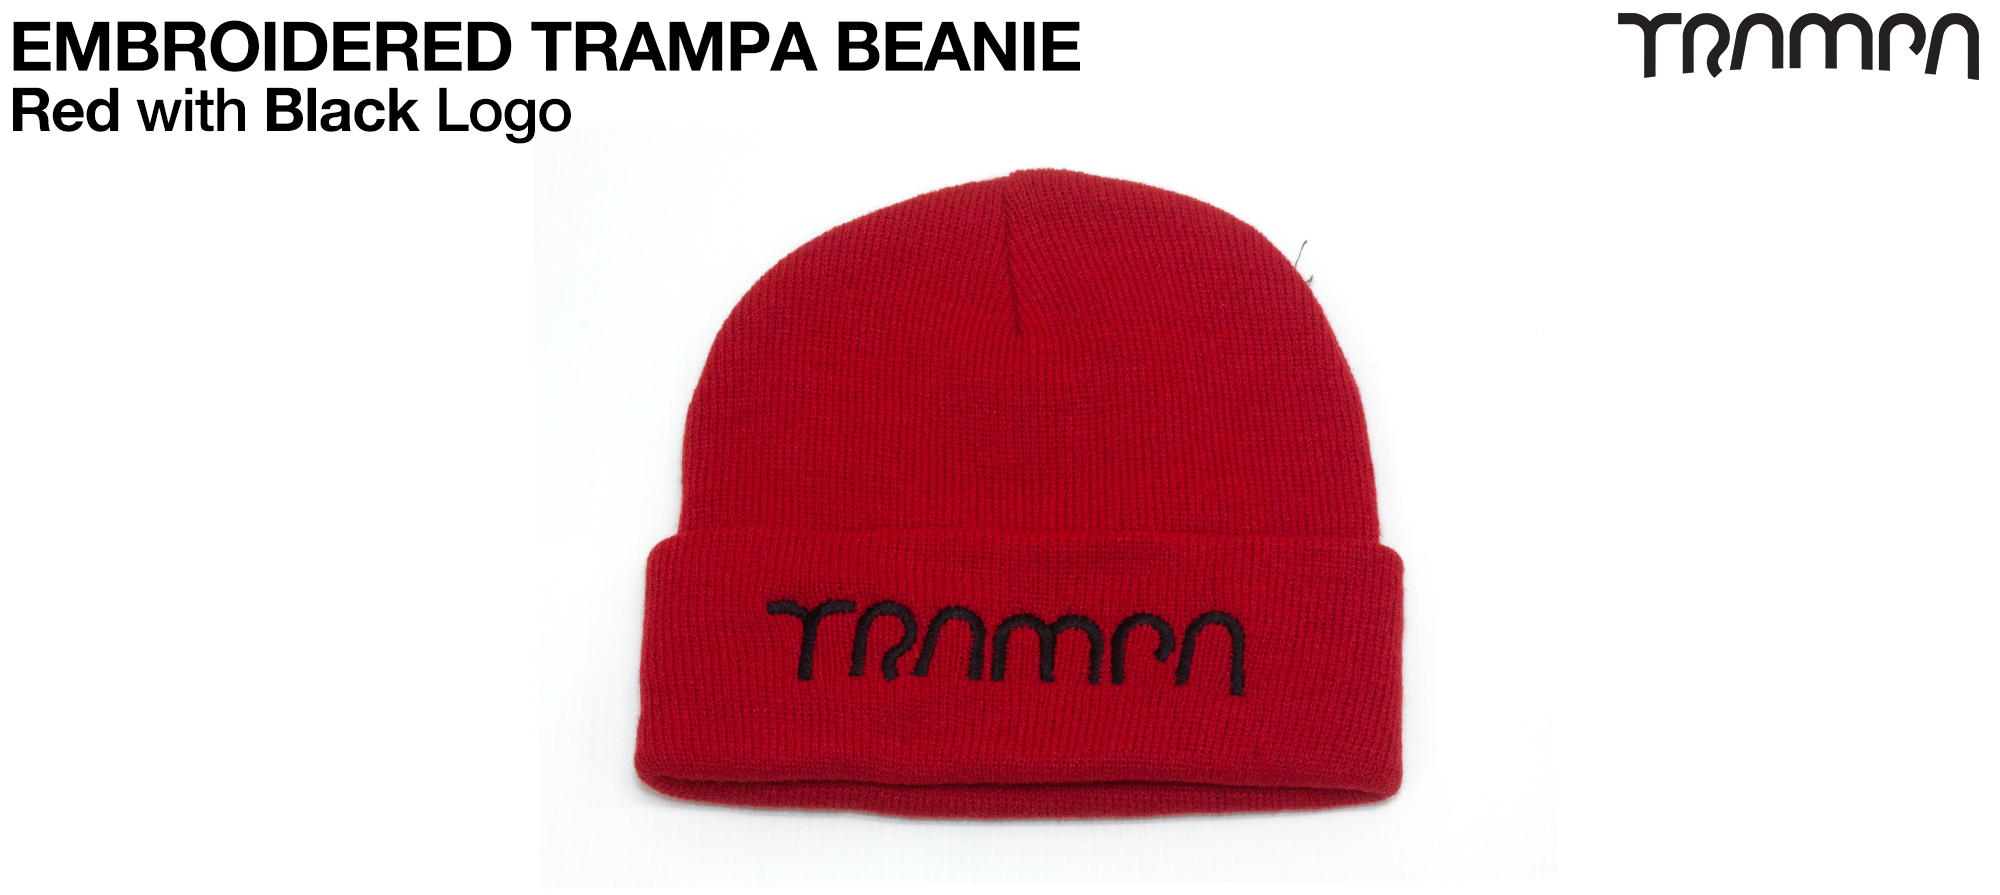 RED Wooli Hat with BLACK TRAMPA Embroidery - Double thick turn over for extra warmth